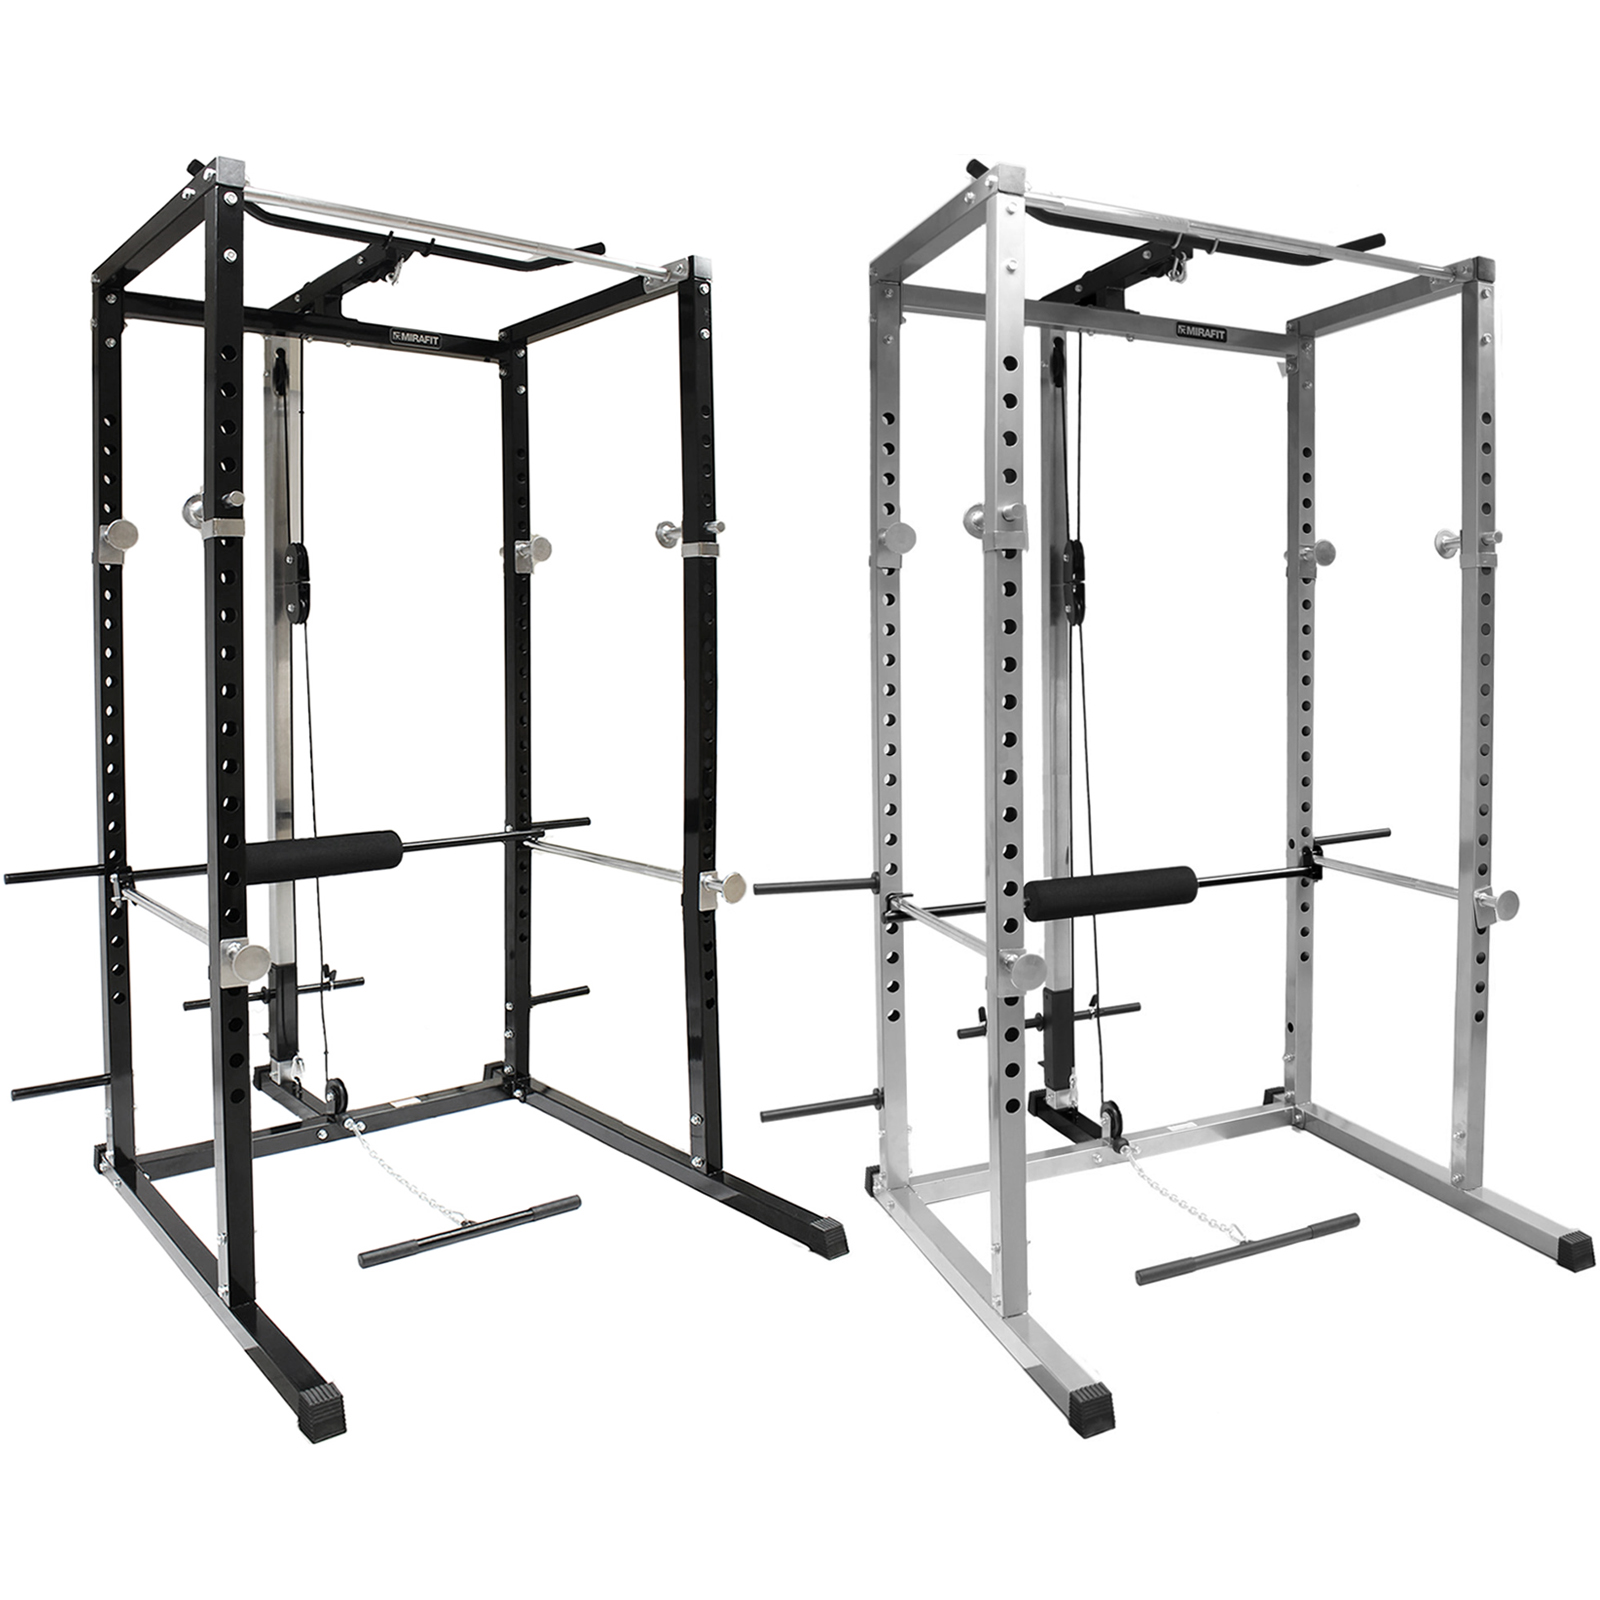 Bench Presses Vs Lat Pull Downs: MIRAFIT Power Rack Squat Cage & Cable Lat Pull Up/Down/Row